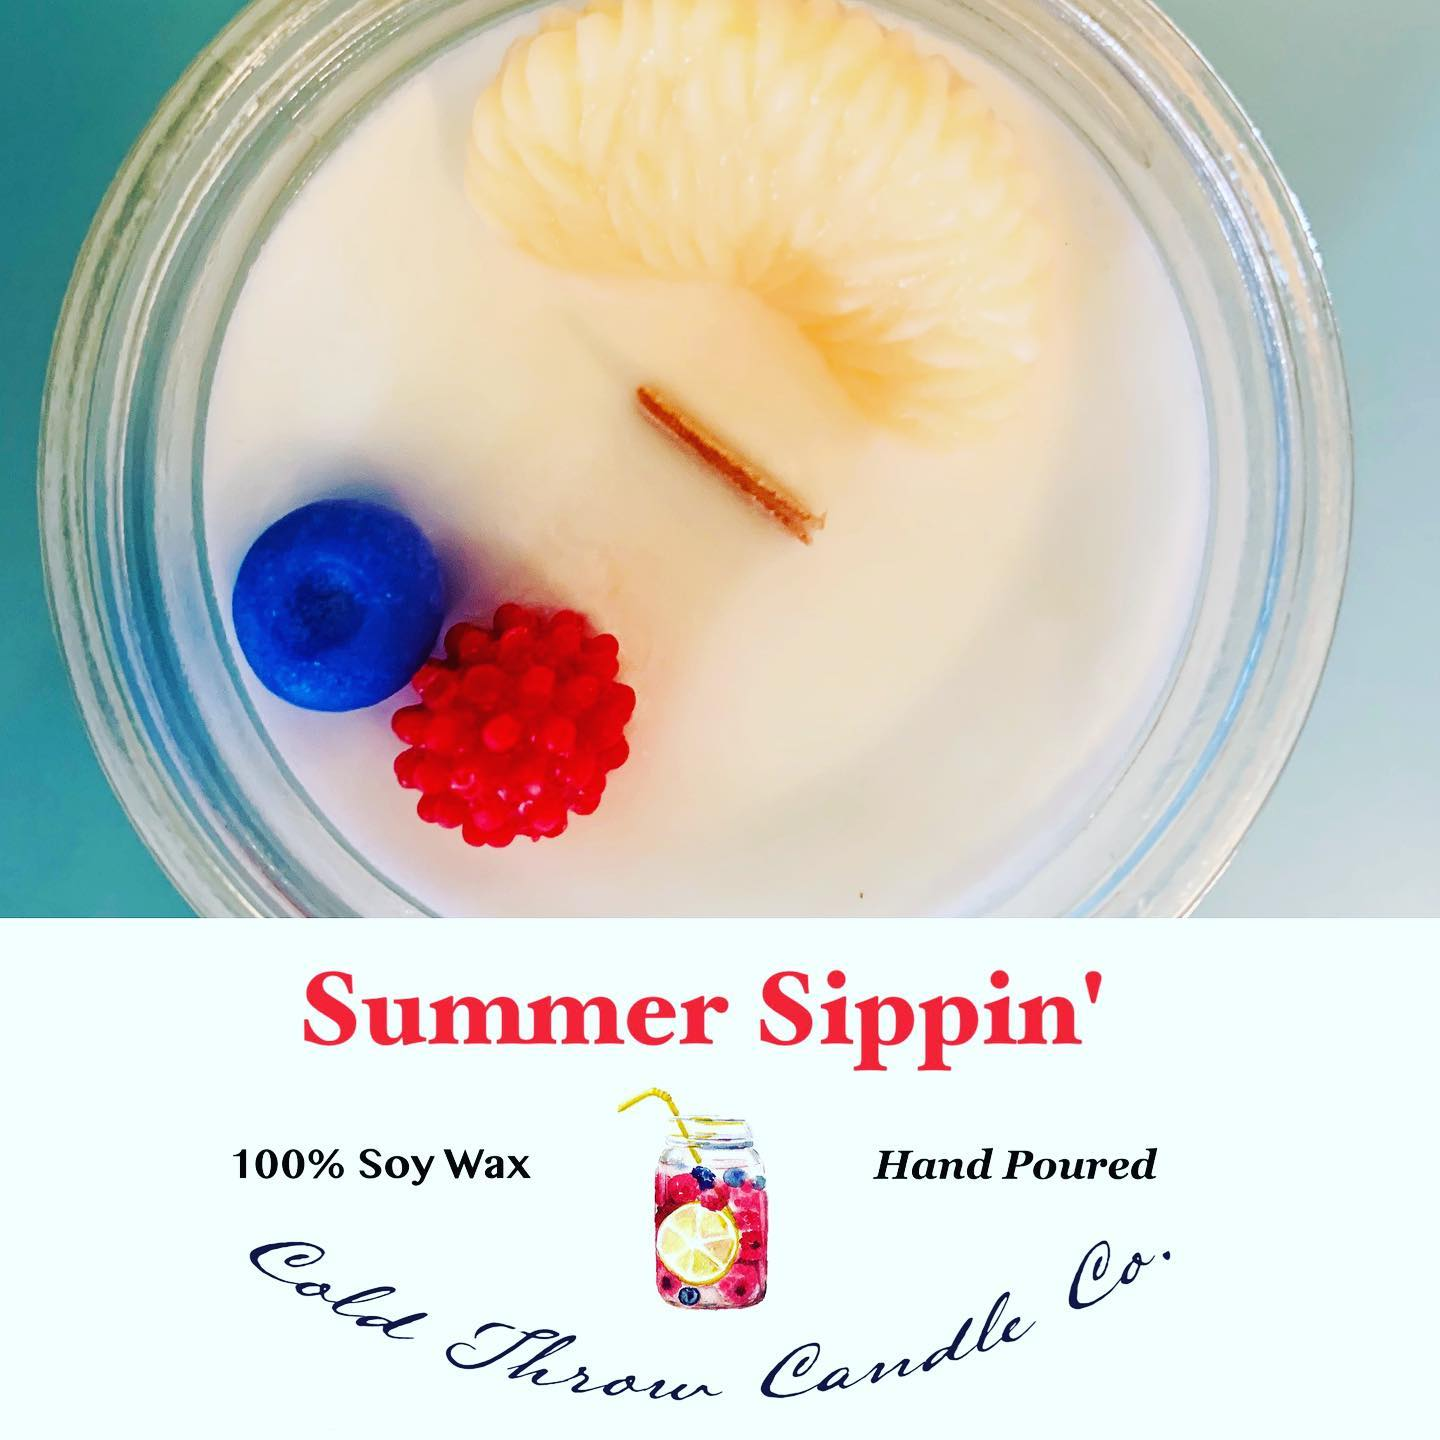 A hot summer day brings the need for a cold refreshing beverage best shared amongst friends. This scent is a combination of peach and sweet nectar with notes of apple blossom/vanilla bringing together the perfect summer beverage.